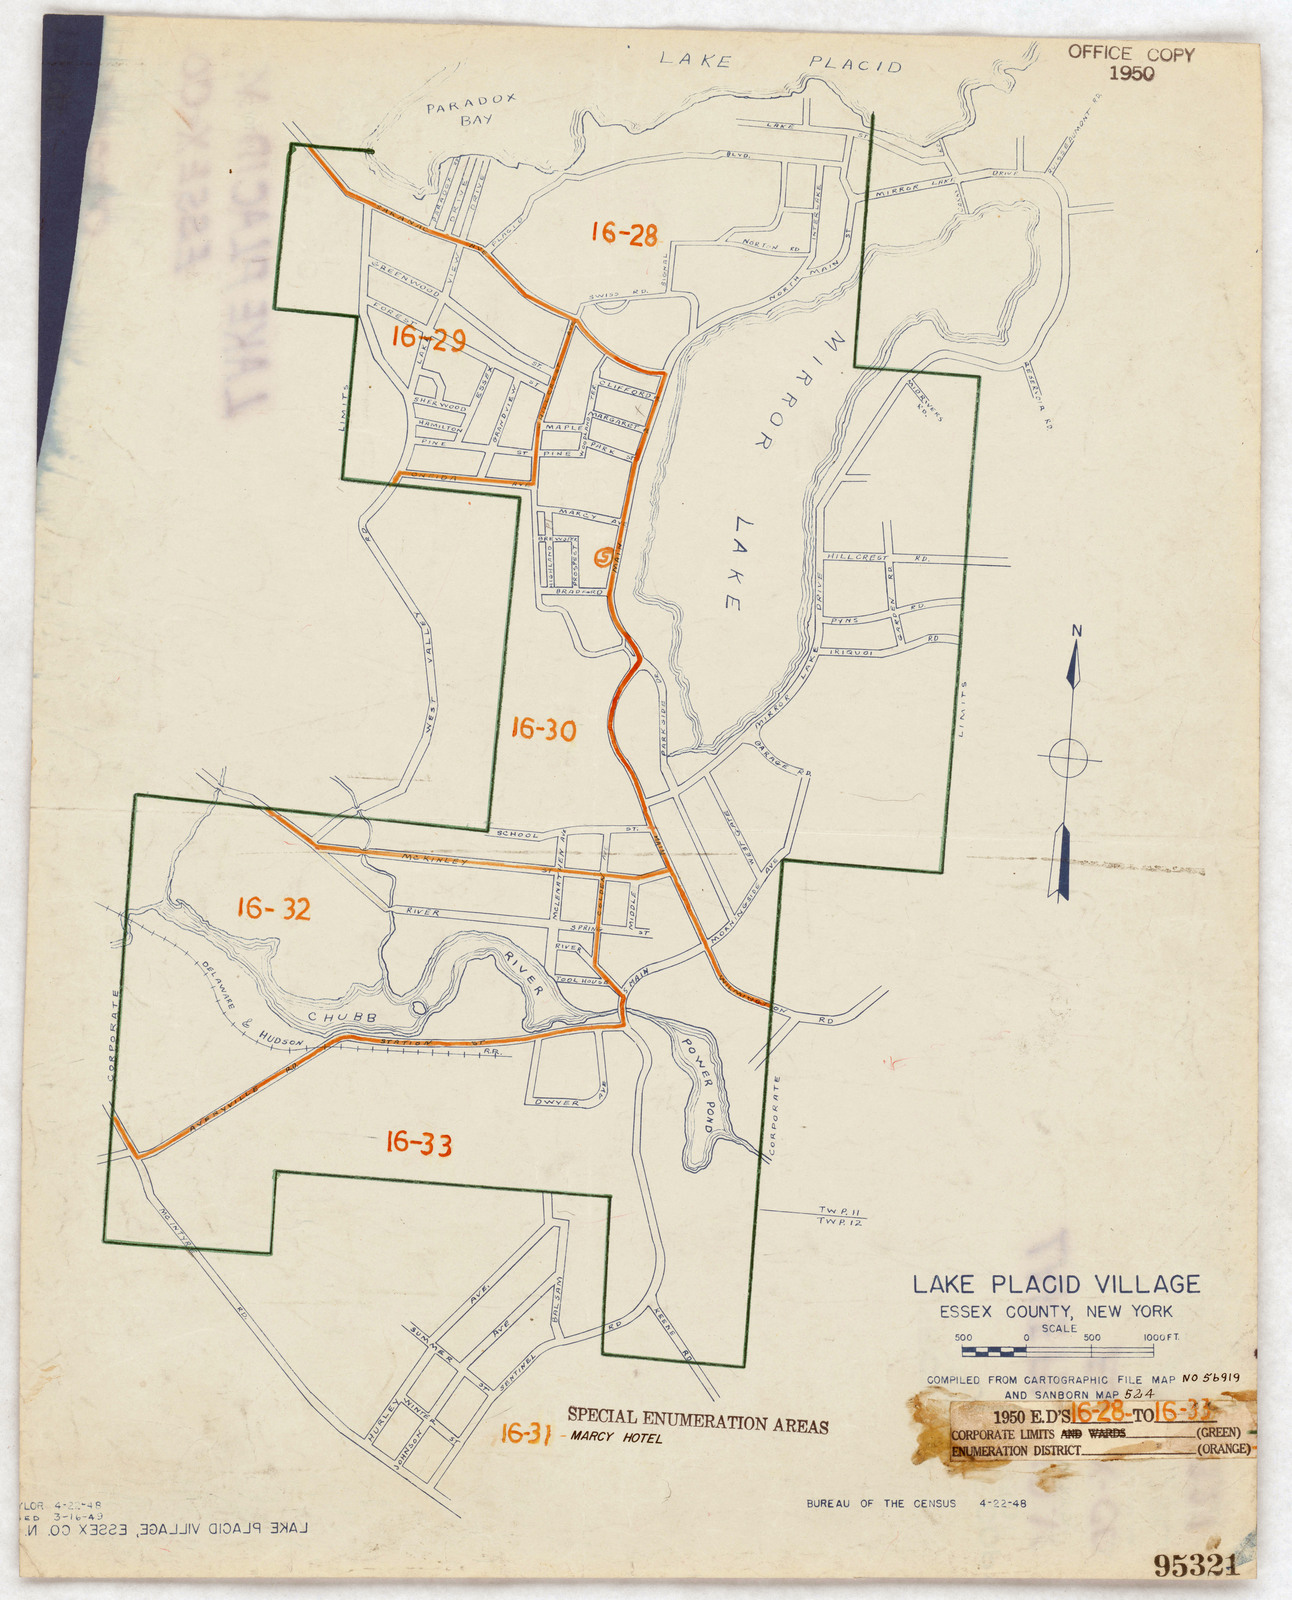 Lake Placid New York Map.1950 Census Enumeration District Maps New York Ny Essex County